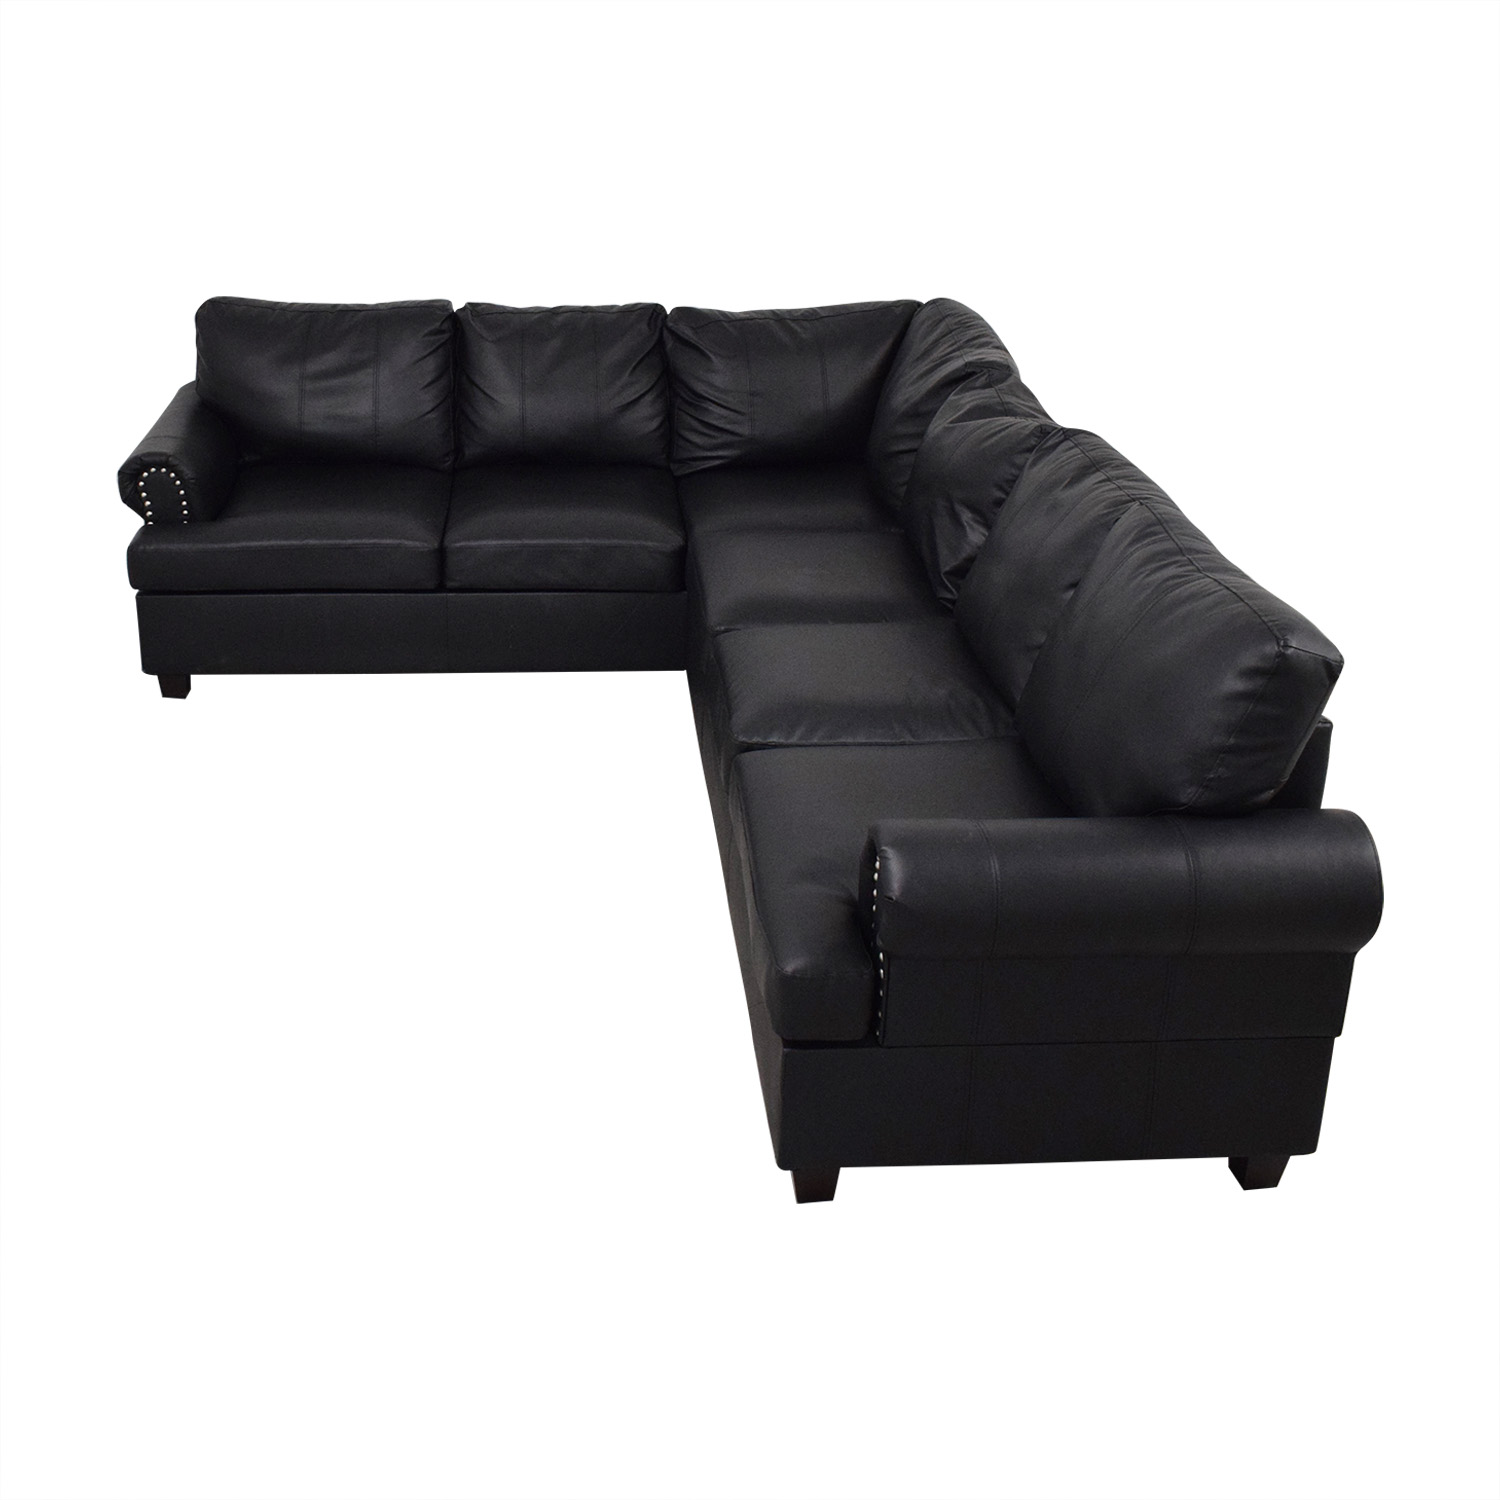 Poundex Poundex Bobkona Cady Reversible Sectional Sofa for sale